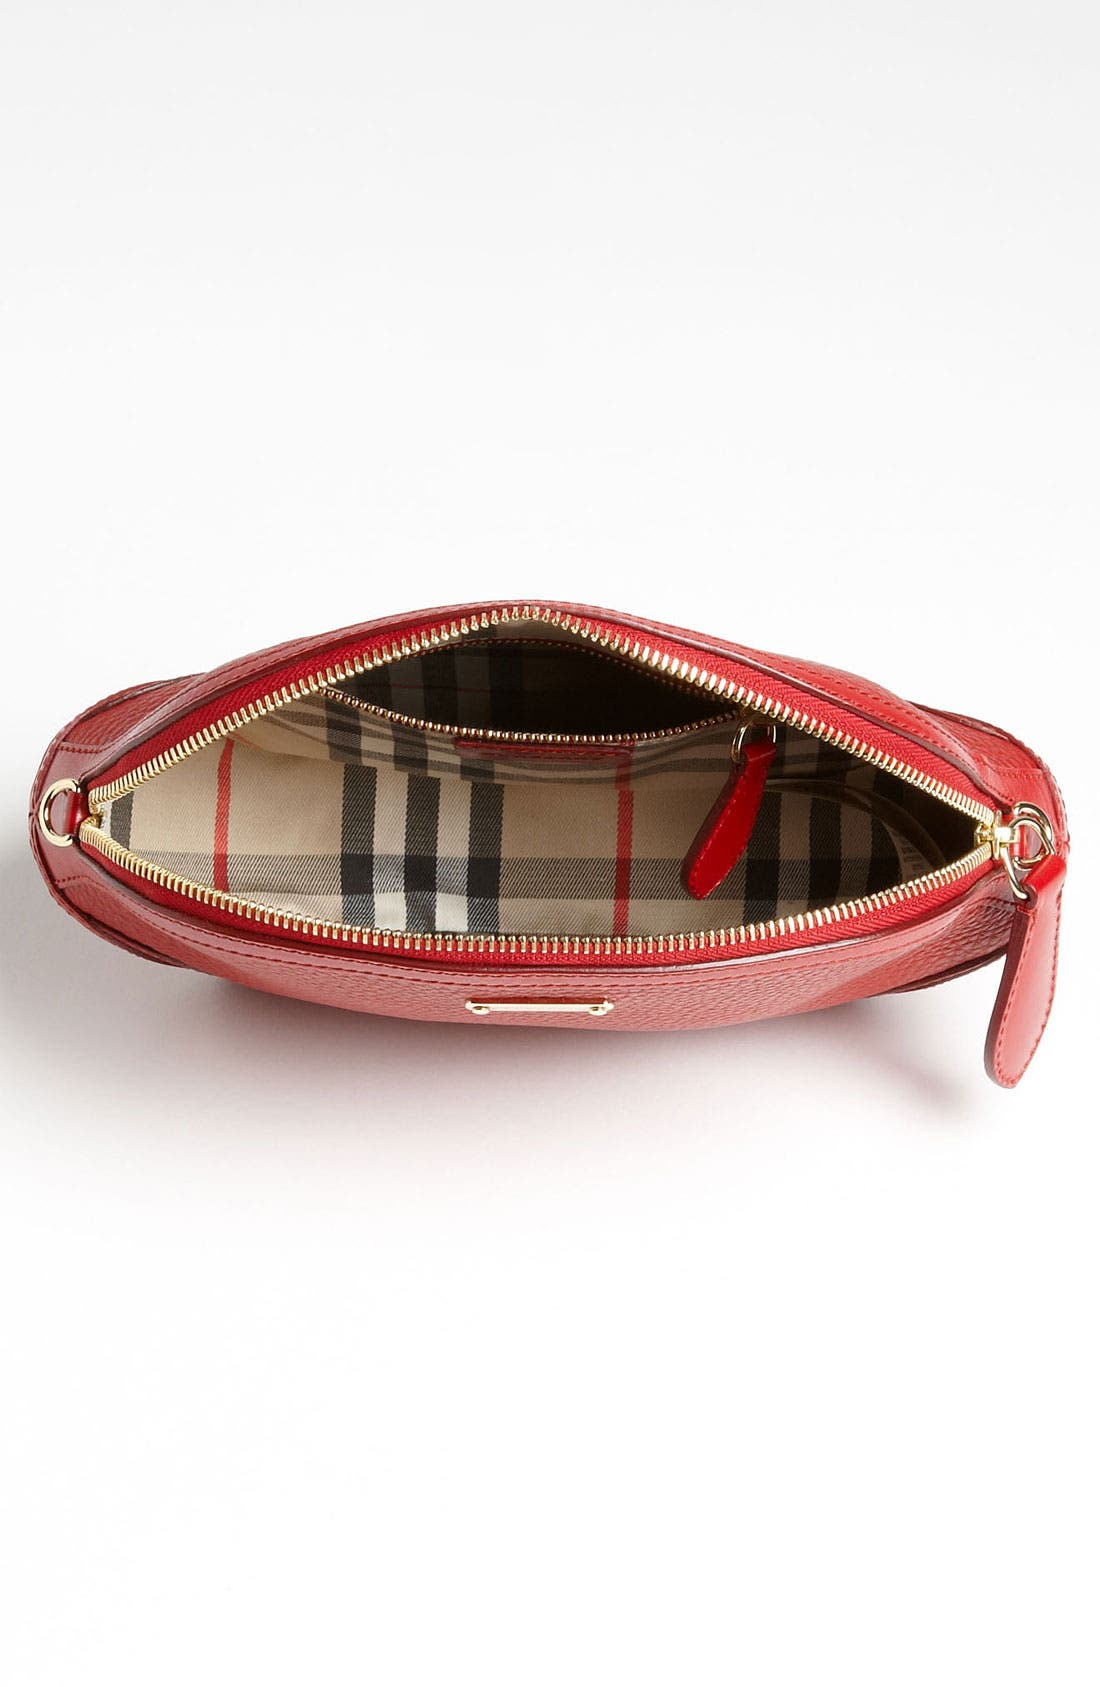 Alternate Image 3  - Burberry 'London Grainy' Leather Crossbody Bag